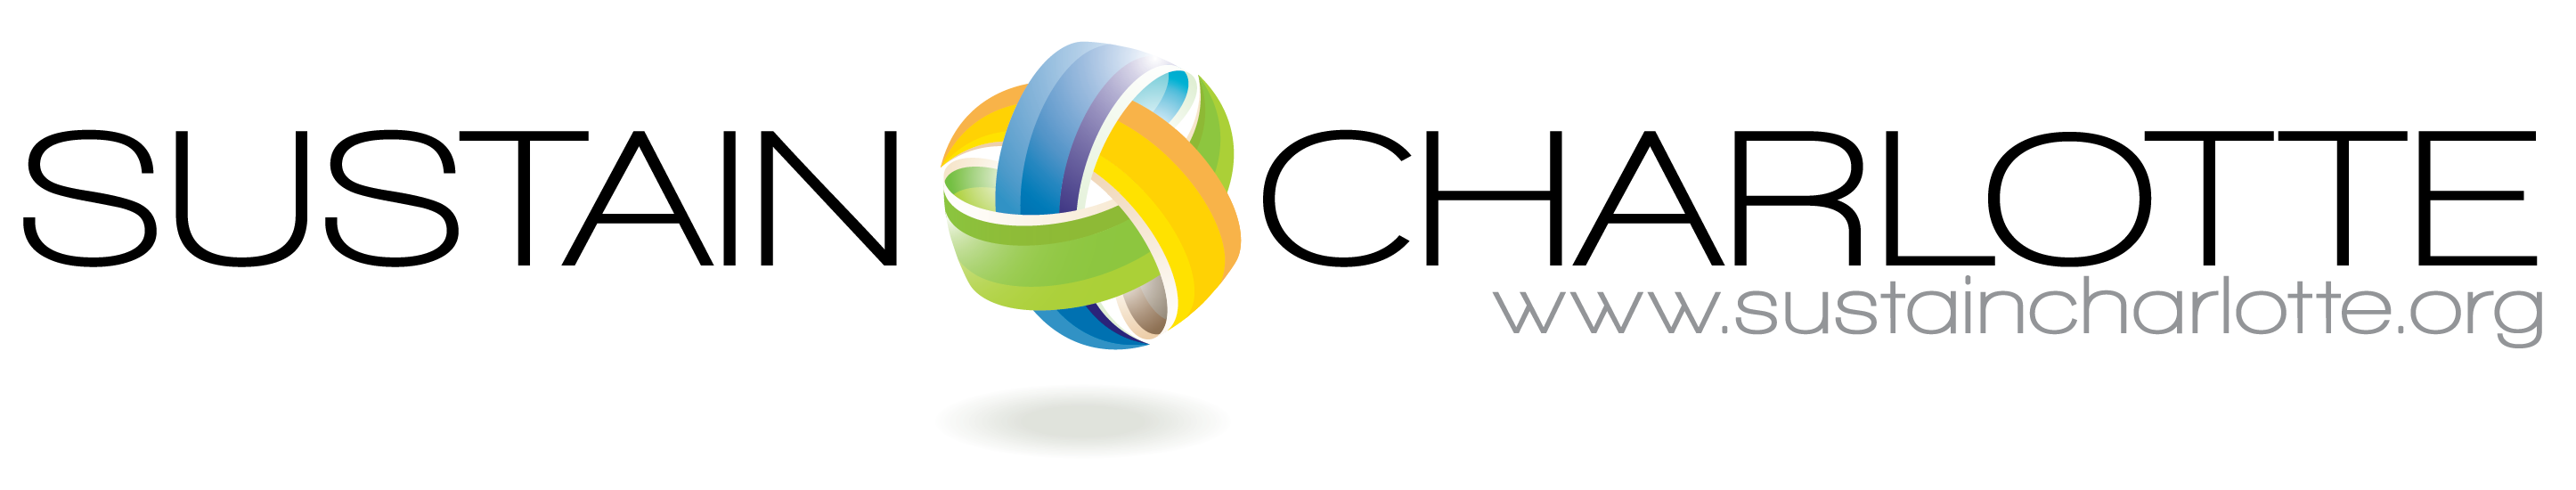 Sustain_Charlotte_Logos_-_High_Res-01.png